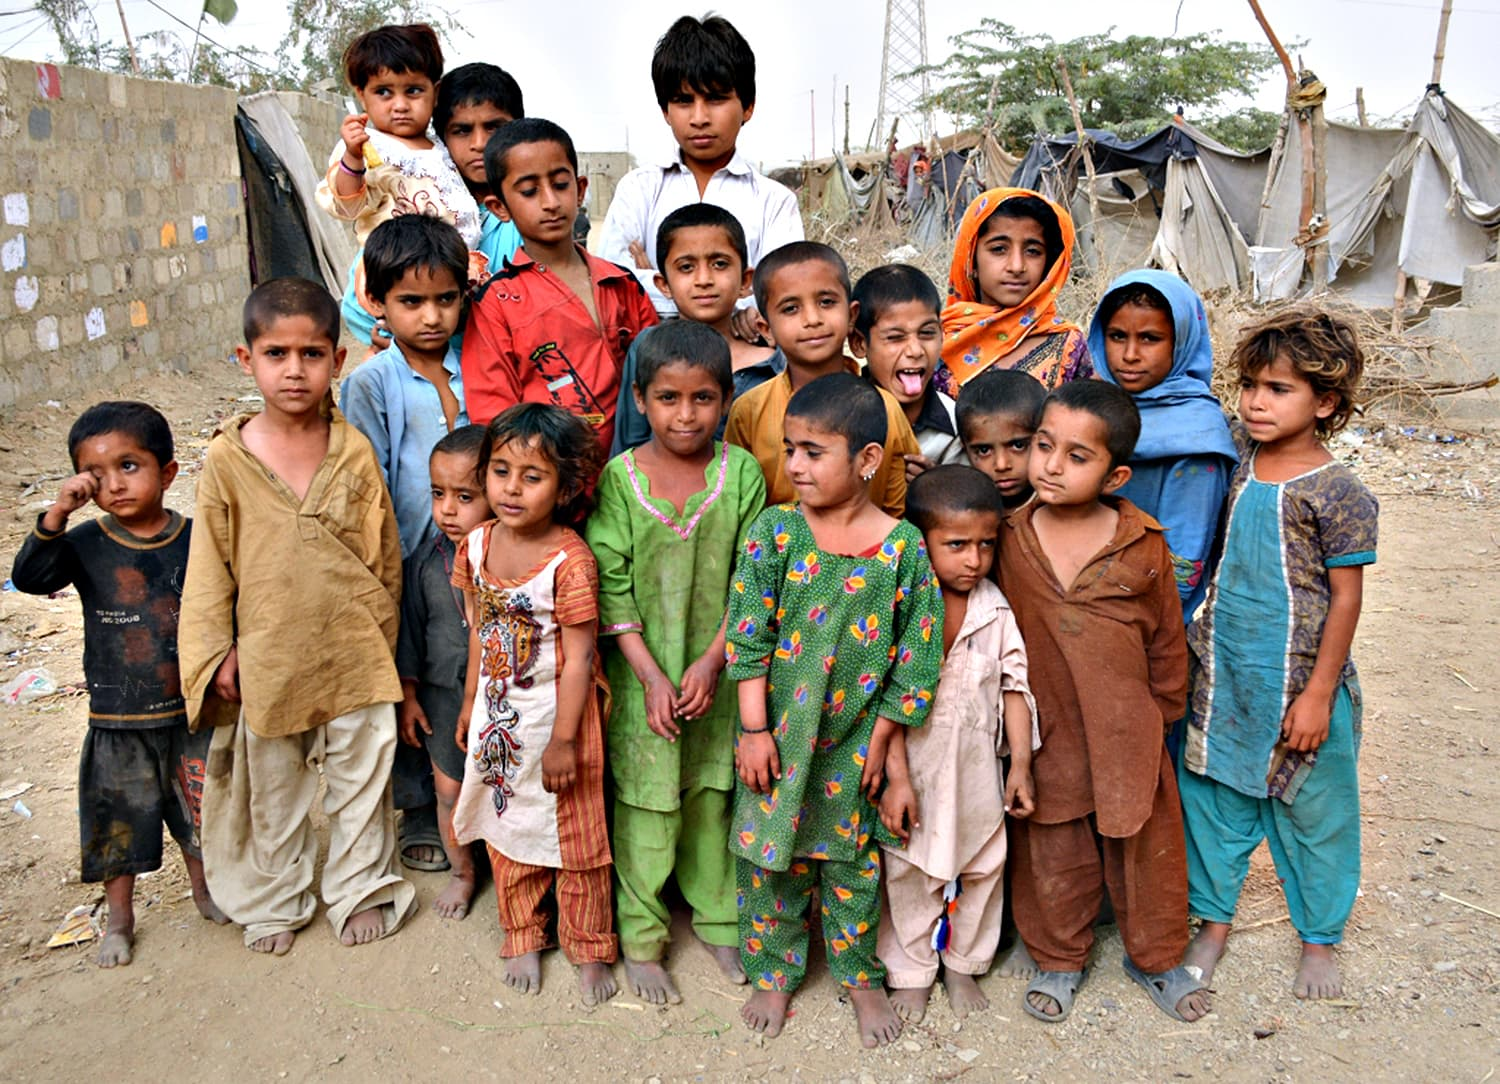 A group of children pose for the camera in Karachi's Sindhabad slum.